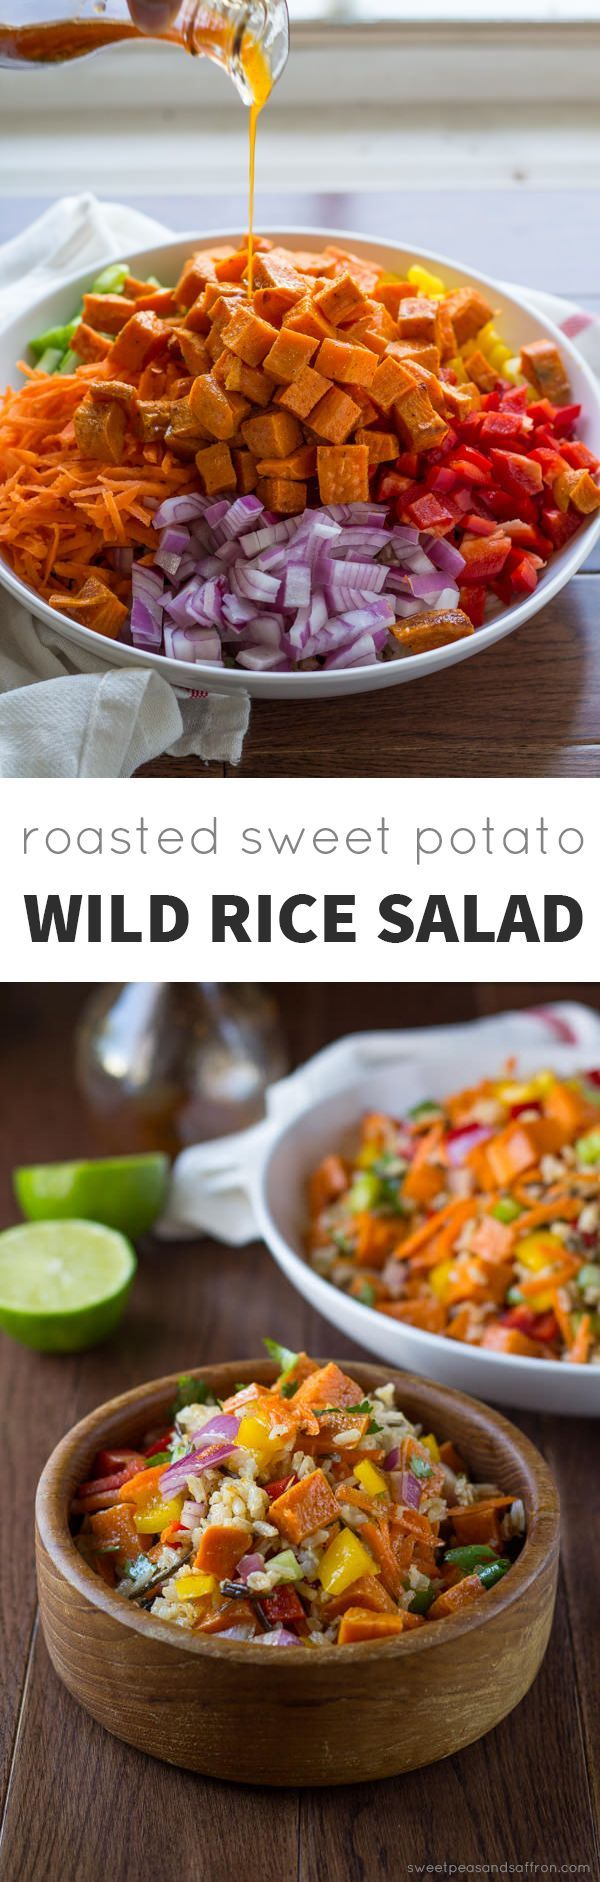 Roasted Sweet Potato Rice Salad with Chili Lime Vinaigrette- Roasted sweet potatoes, carrots, peppers, celery, onions and wild rice are tossed in a honey-chili-lime vinaigrette. @sweetpeasaffron